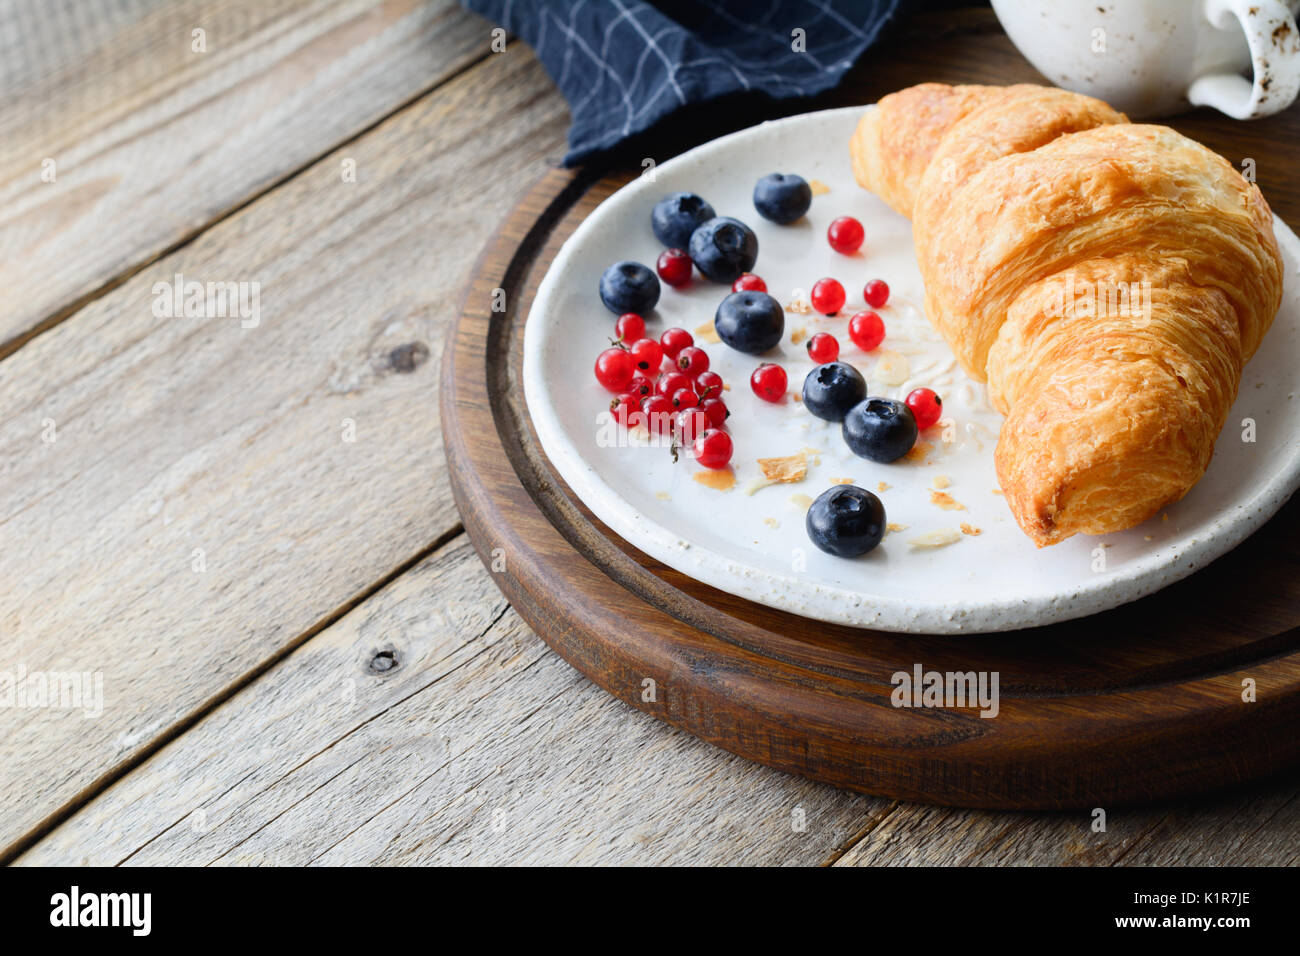 Fresh croissant, blueberries, red currants on white plate and cup of coffee on wooden tray. Continental breakfast - Stock Image